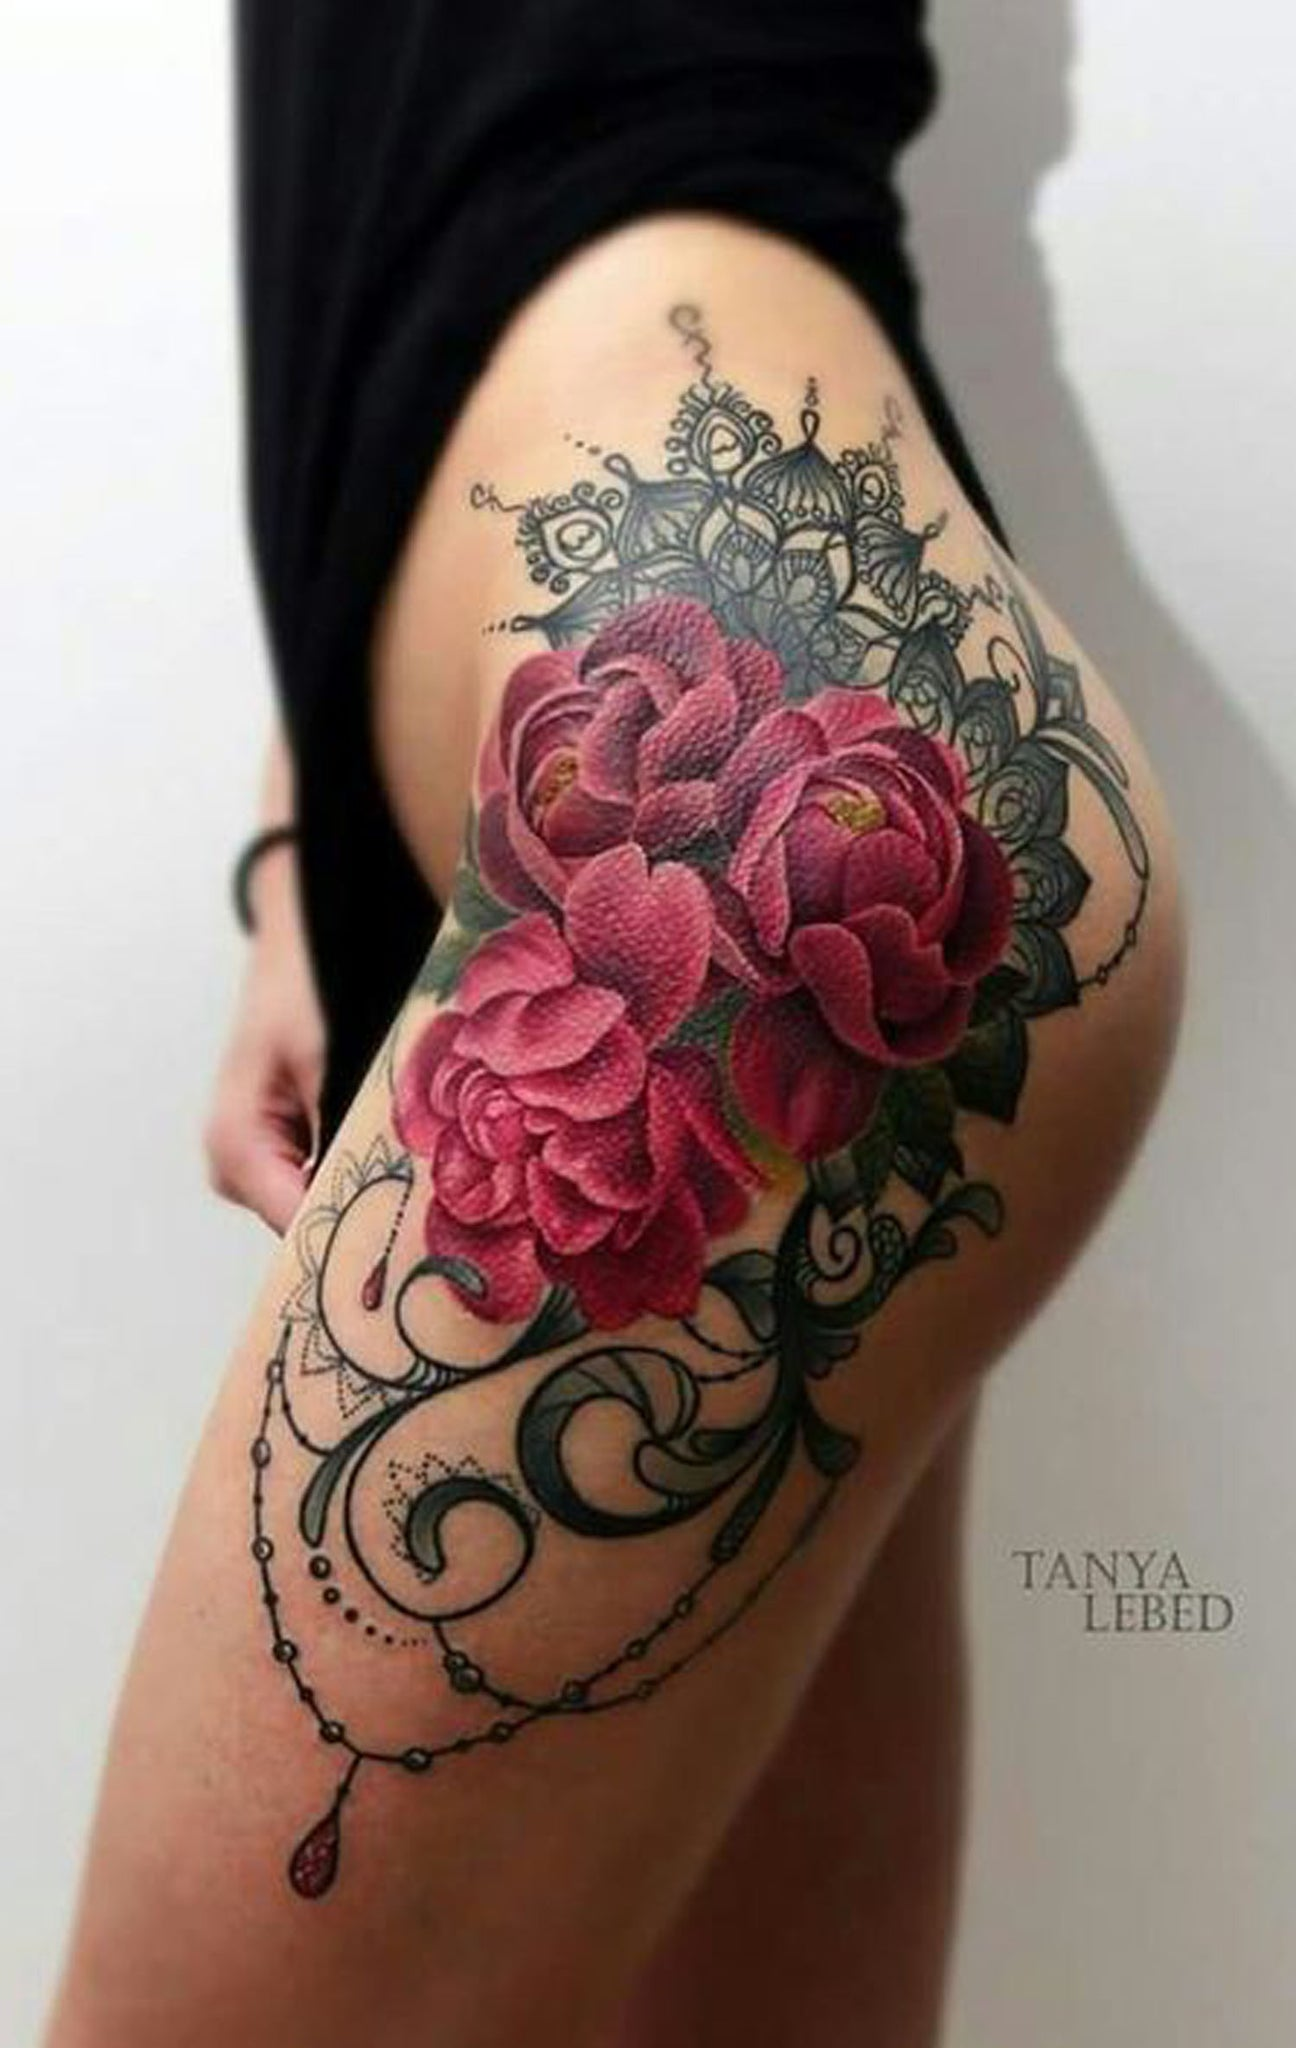 30 Of The Most Realistic Lace Tattoo Ideas Mybodiart